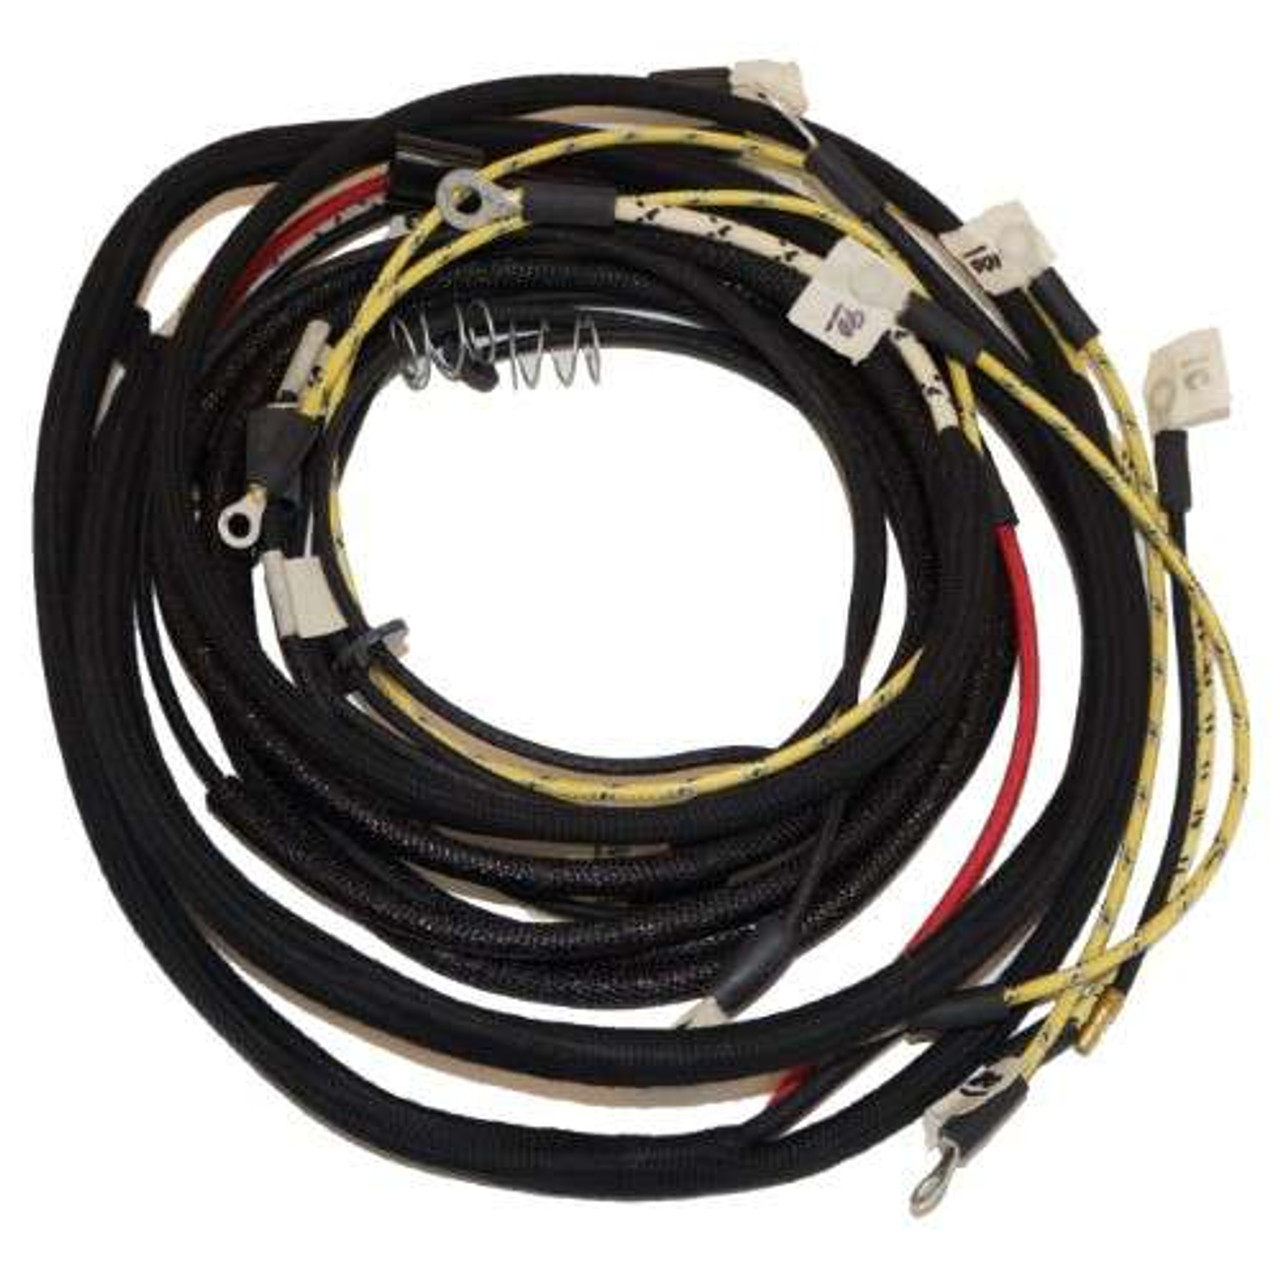 hight resolution of wiring harness kit tractors with 1 wire alternator allis chalmers wd wd45 djs tractor parts llc